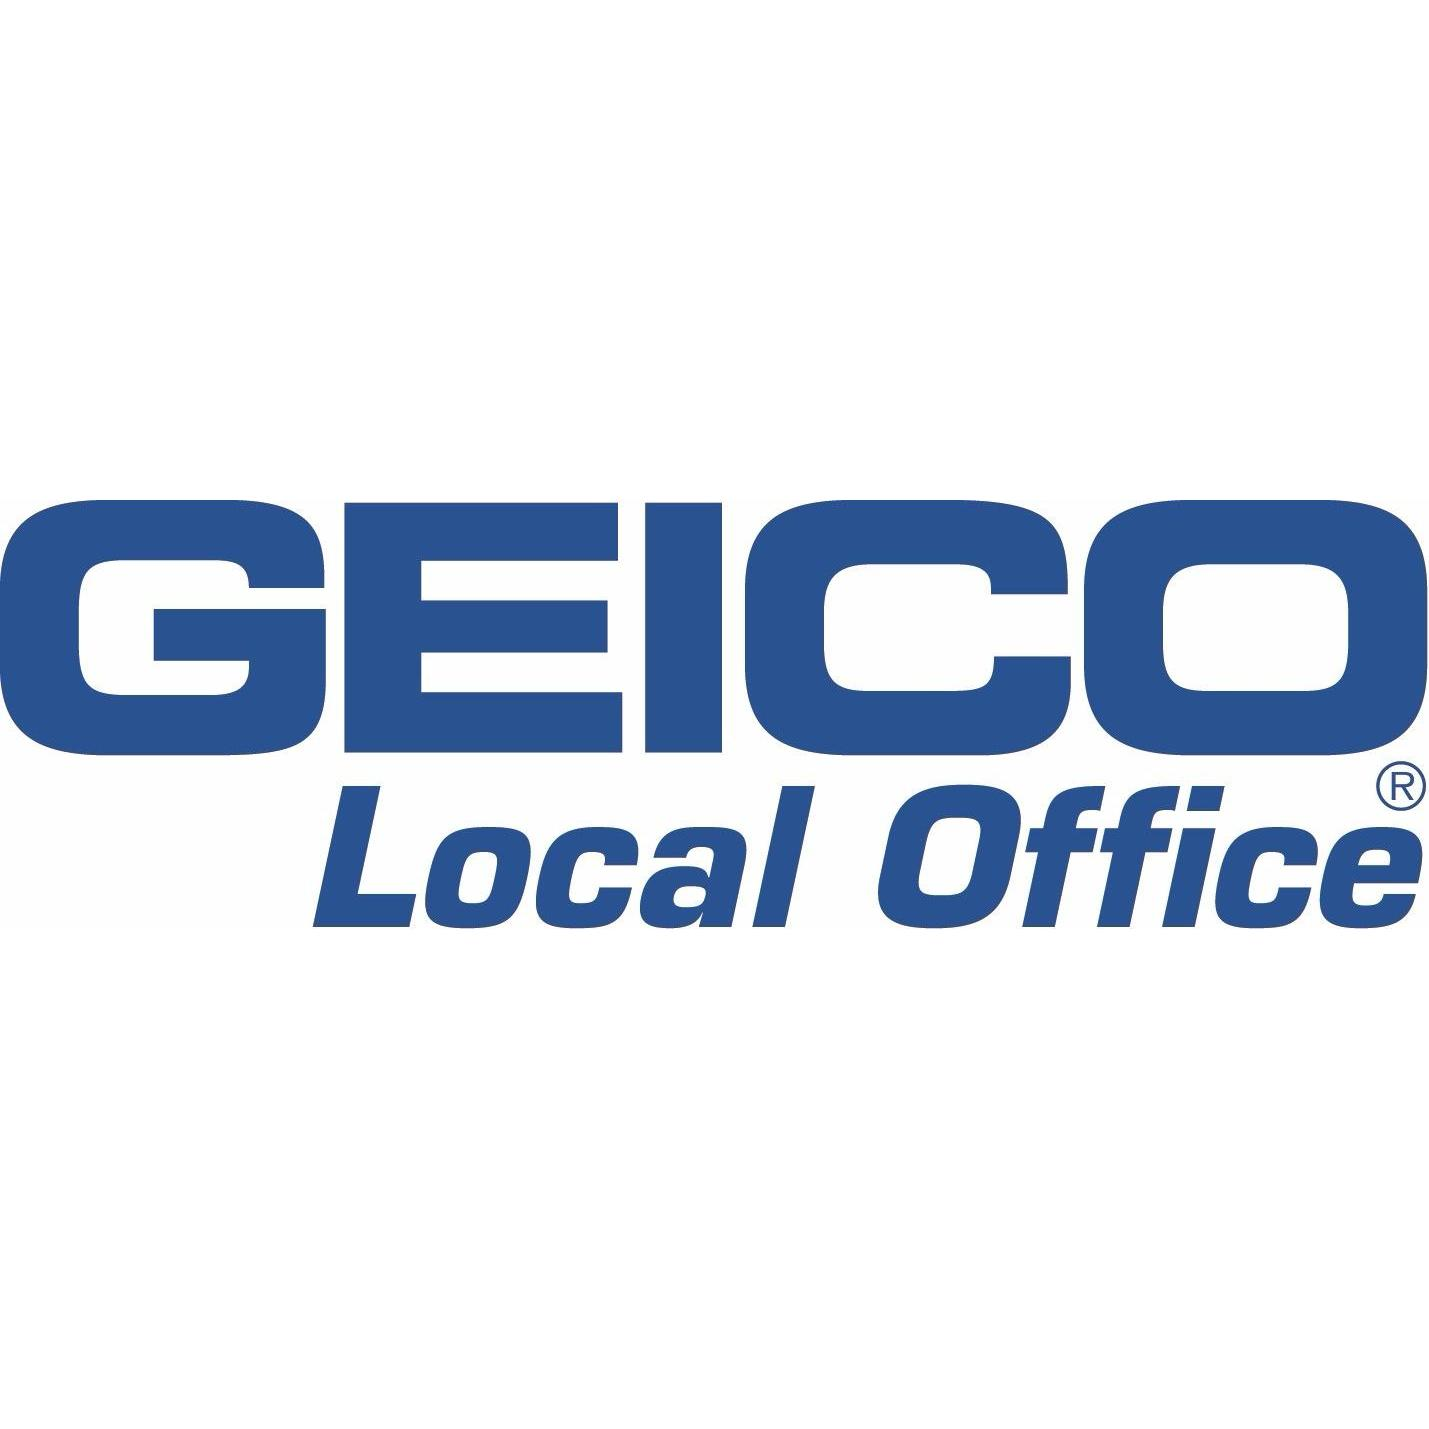 GEICO Insurance Agent - North Olmsted, OH 44070 - (440) 777-7272 | ShowMeLocal.com